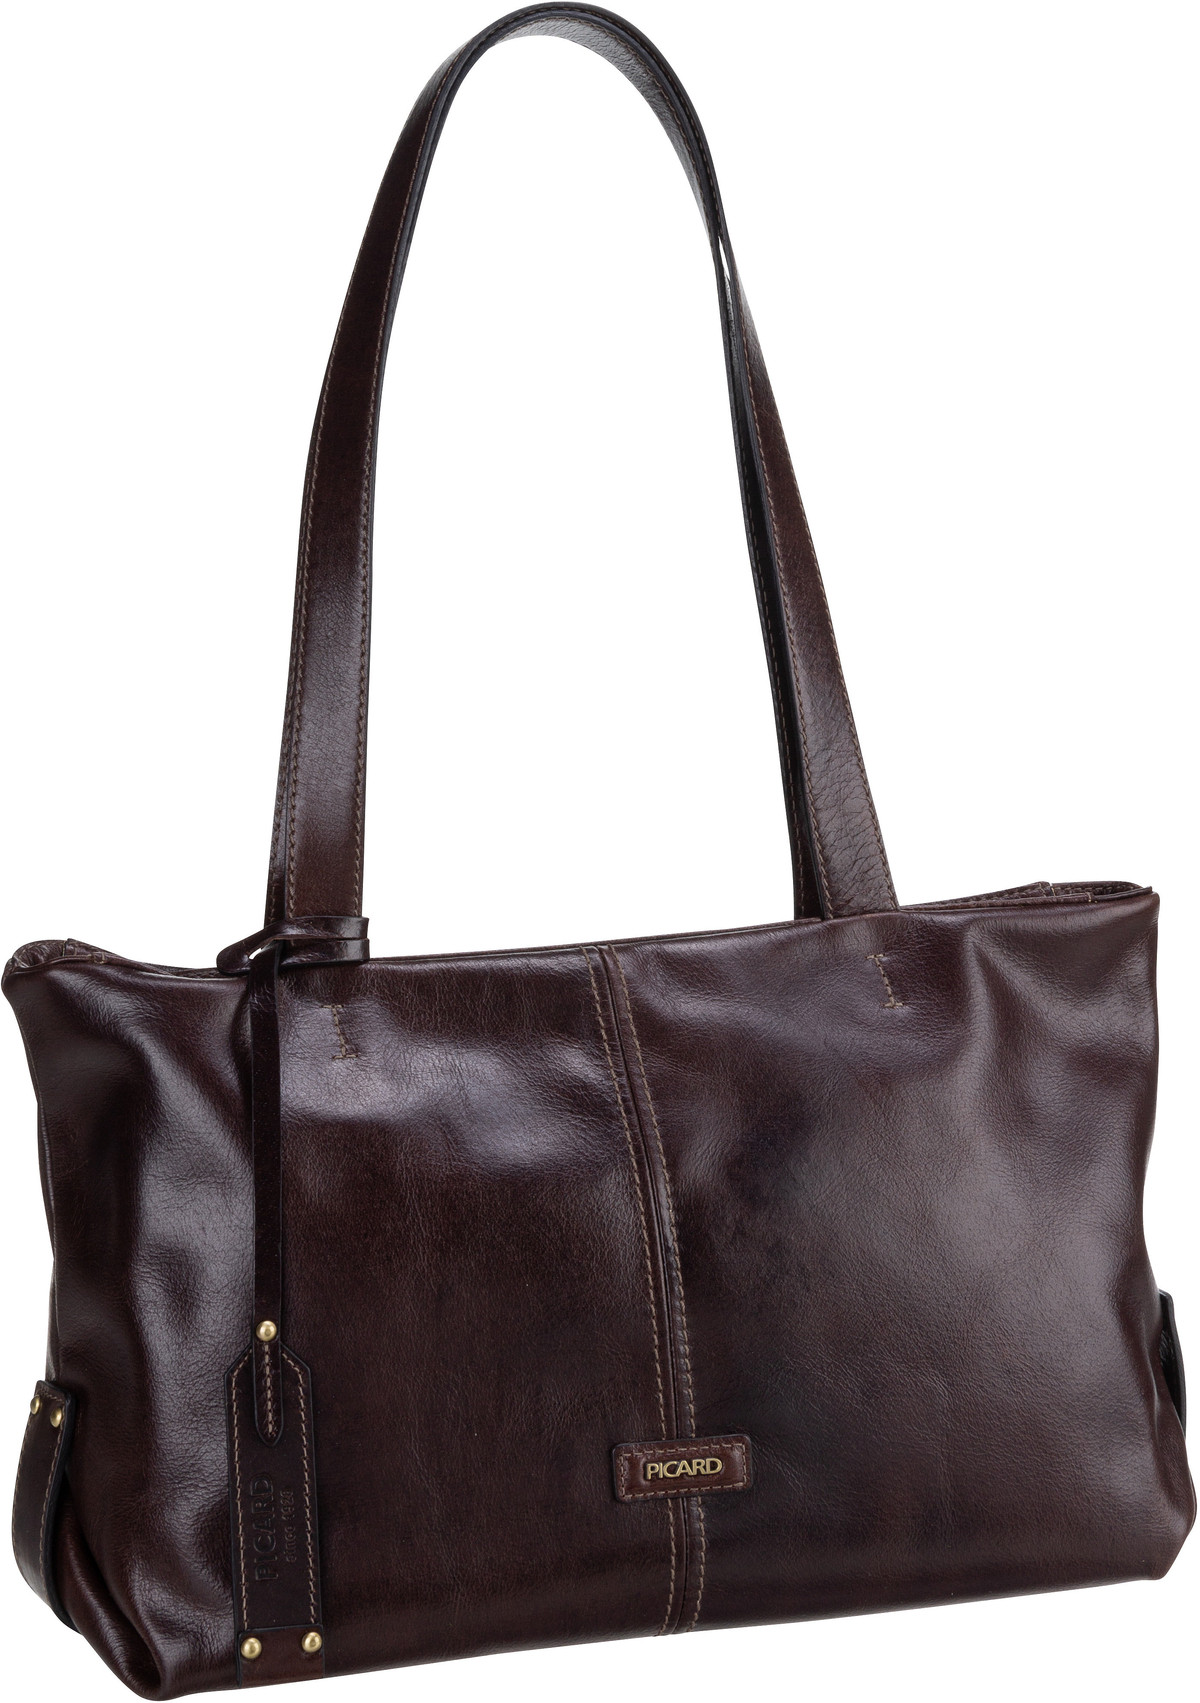 Handtasche Eternity 4956 Cafe